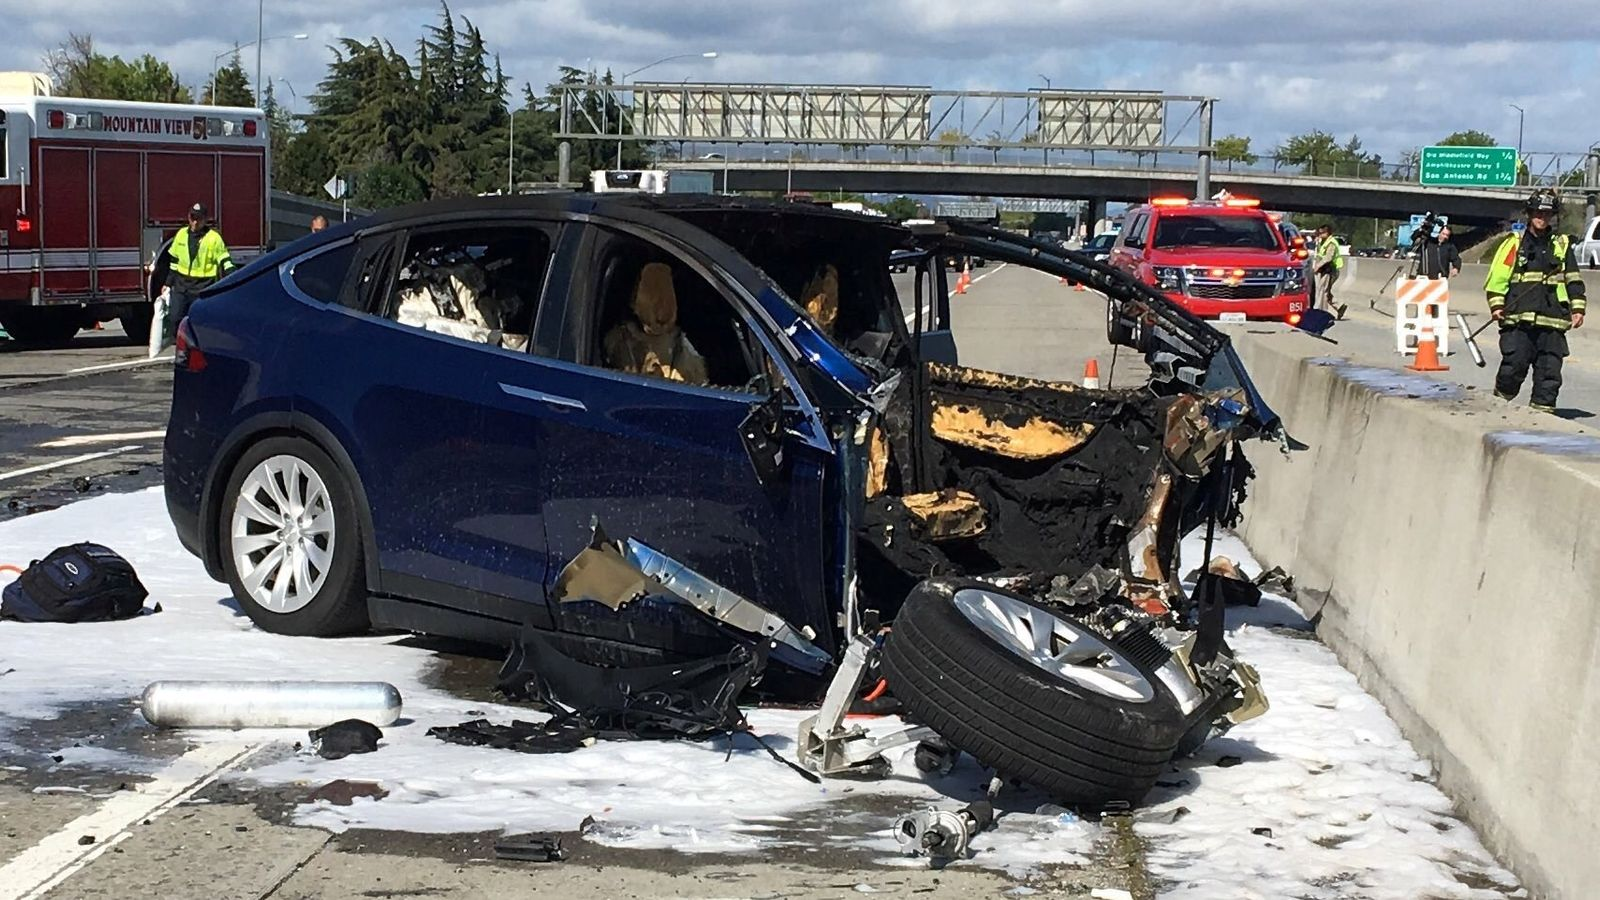 Tesla safety criticised after Autopilot crash